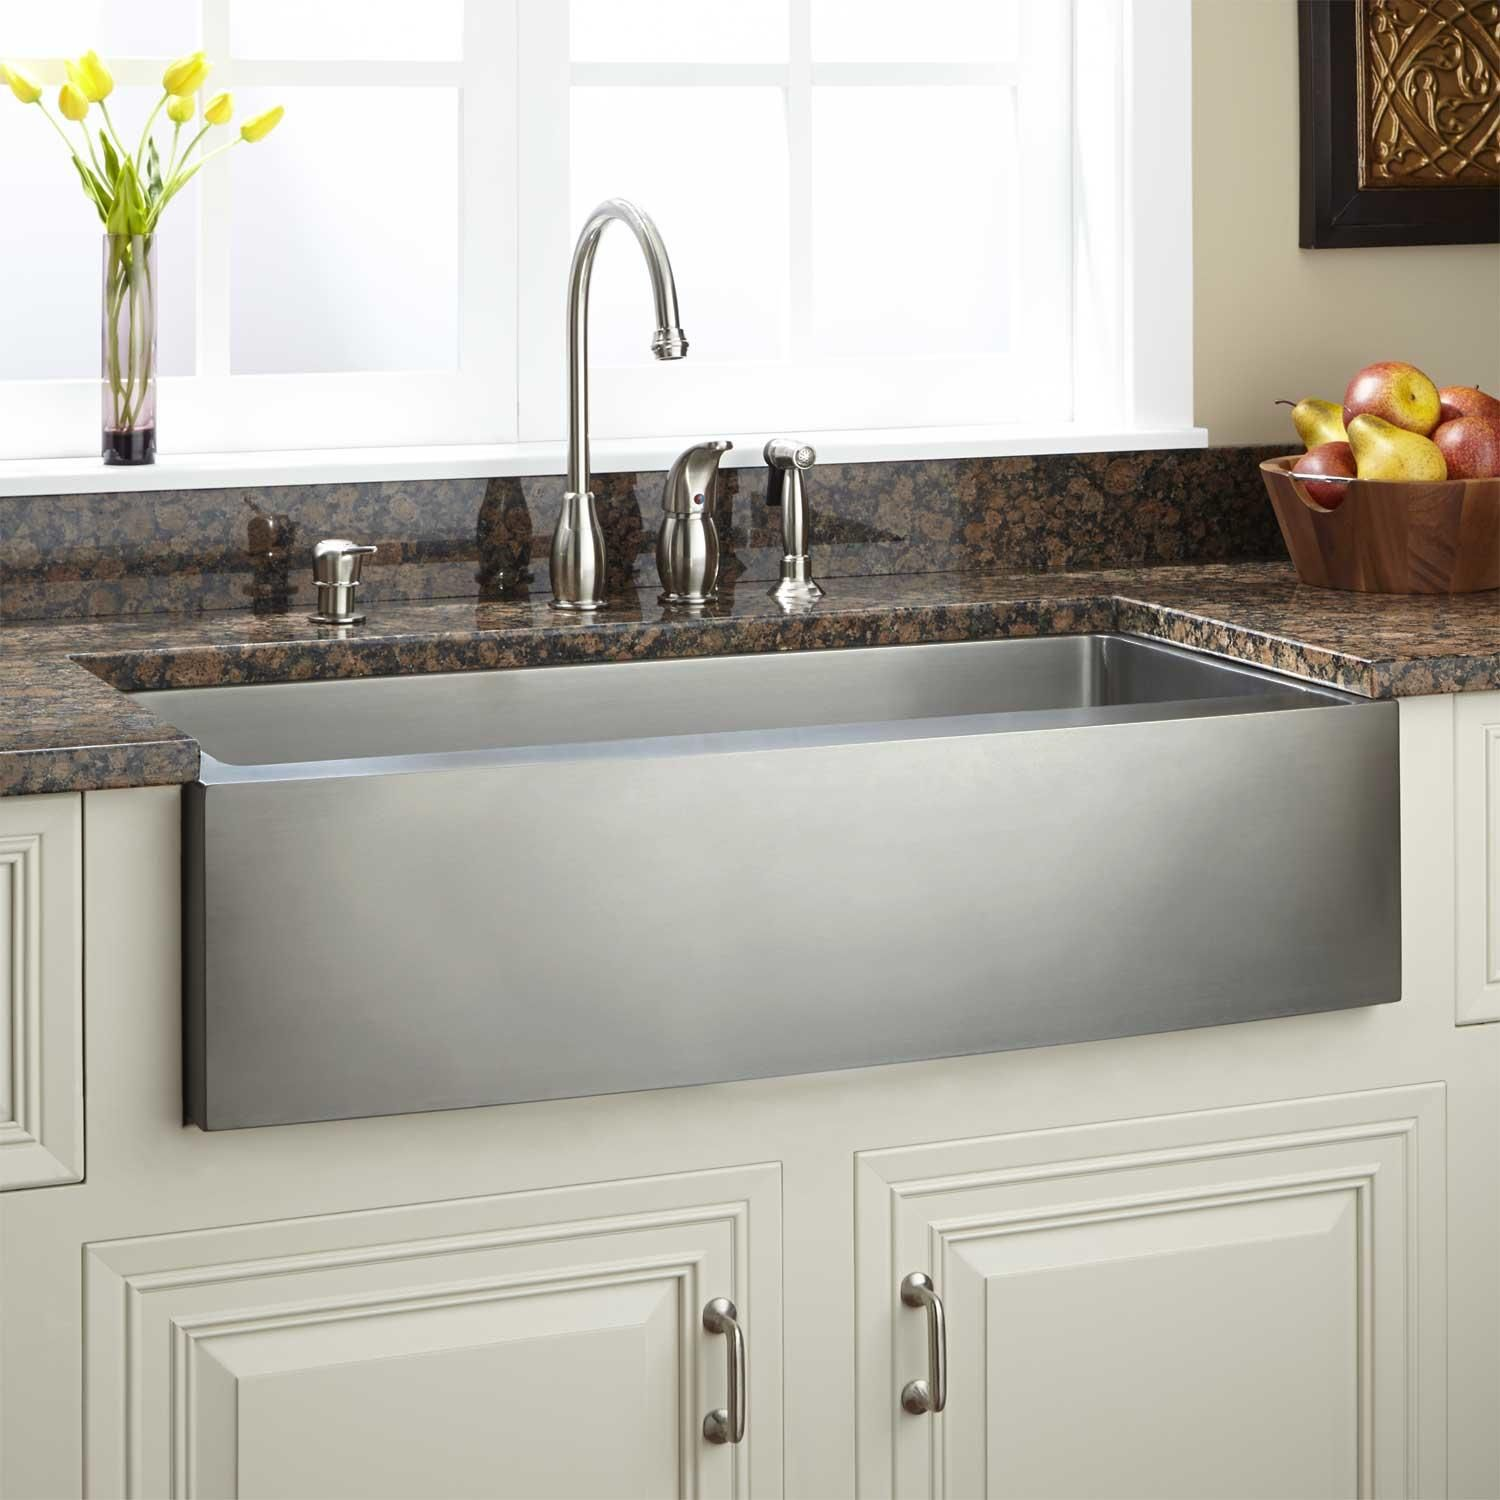 39 fournier stainless steel farmhouse sink in curved